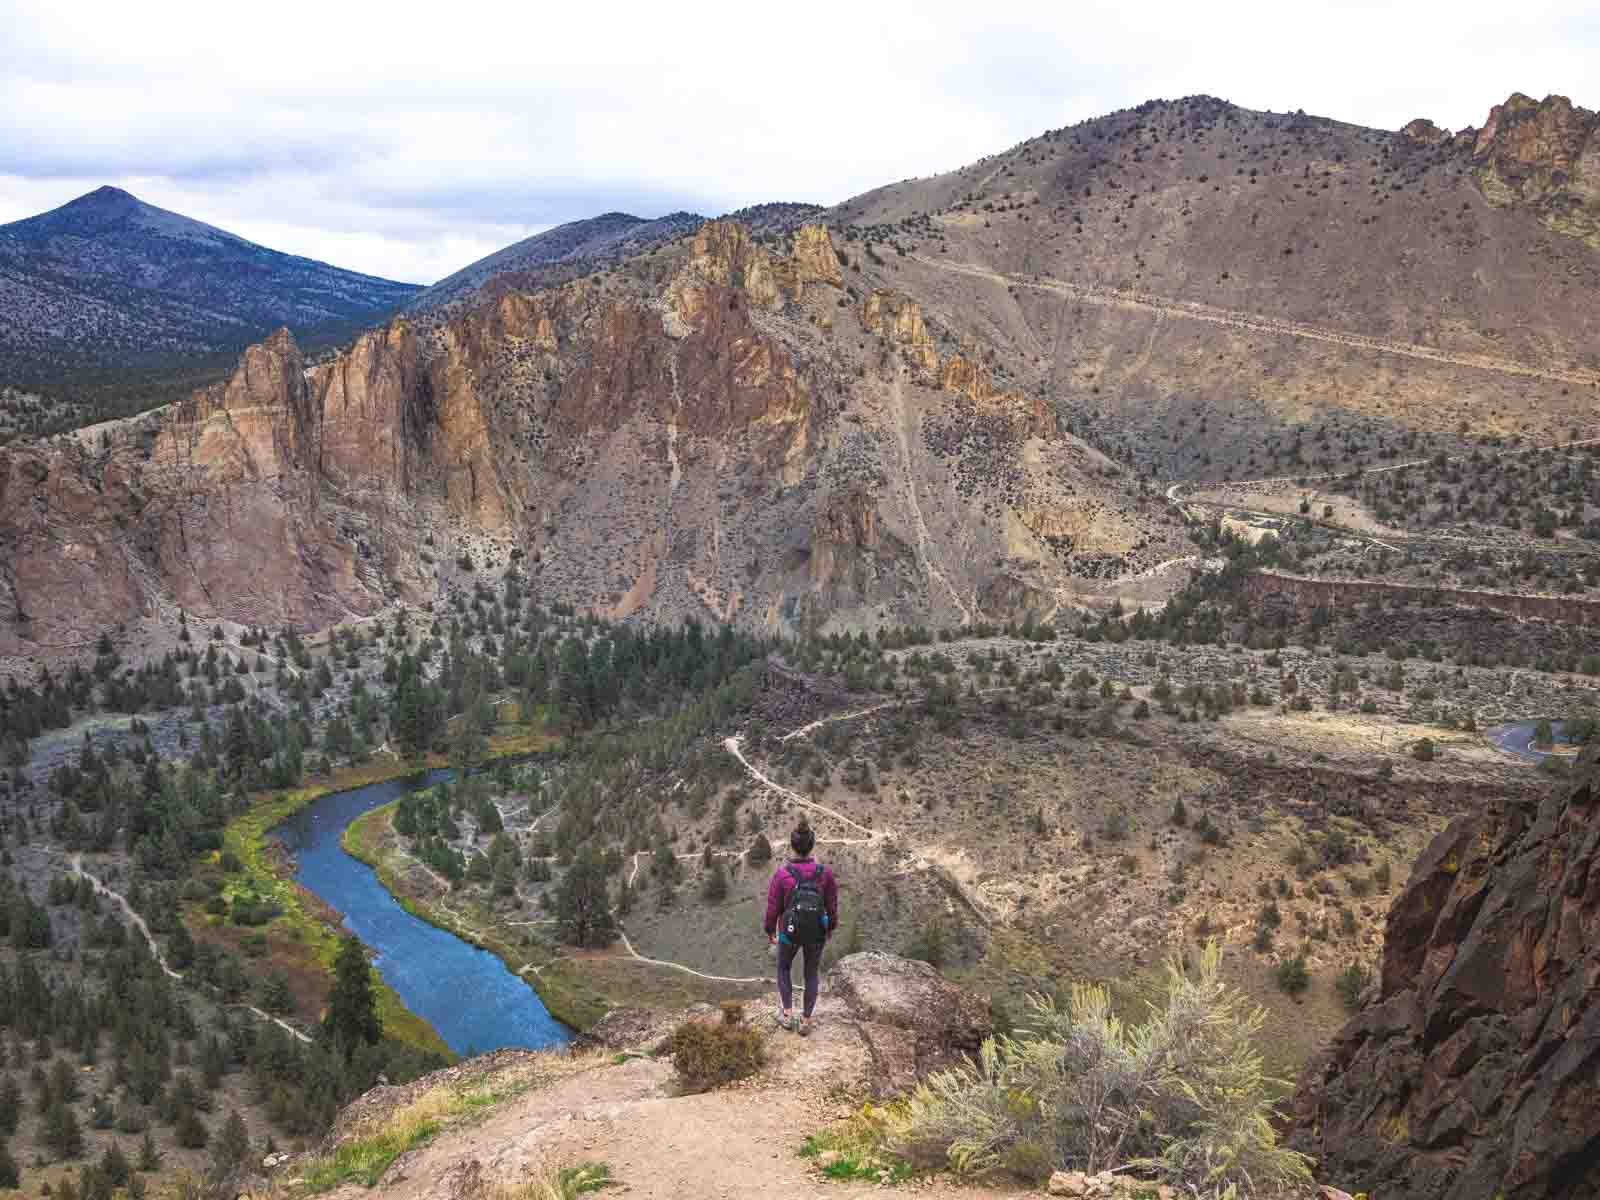 A Guide to Smith Rock State Park's Hikes, Misery Ridge Trail & More